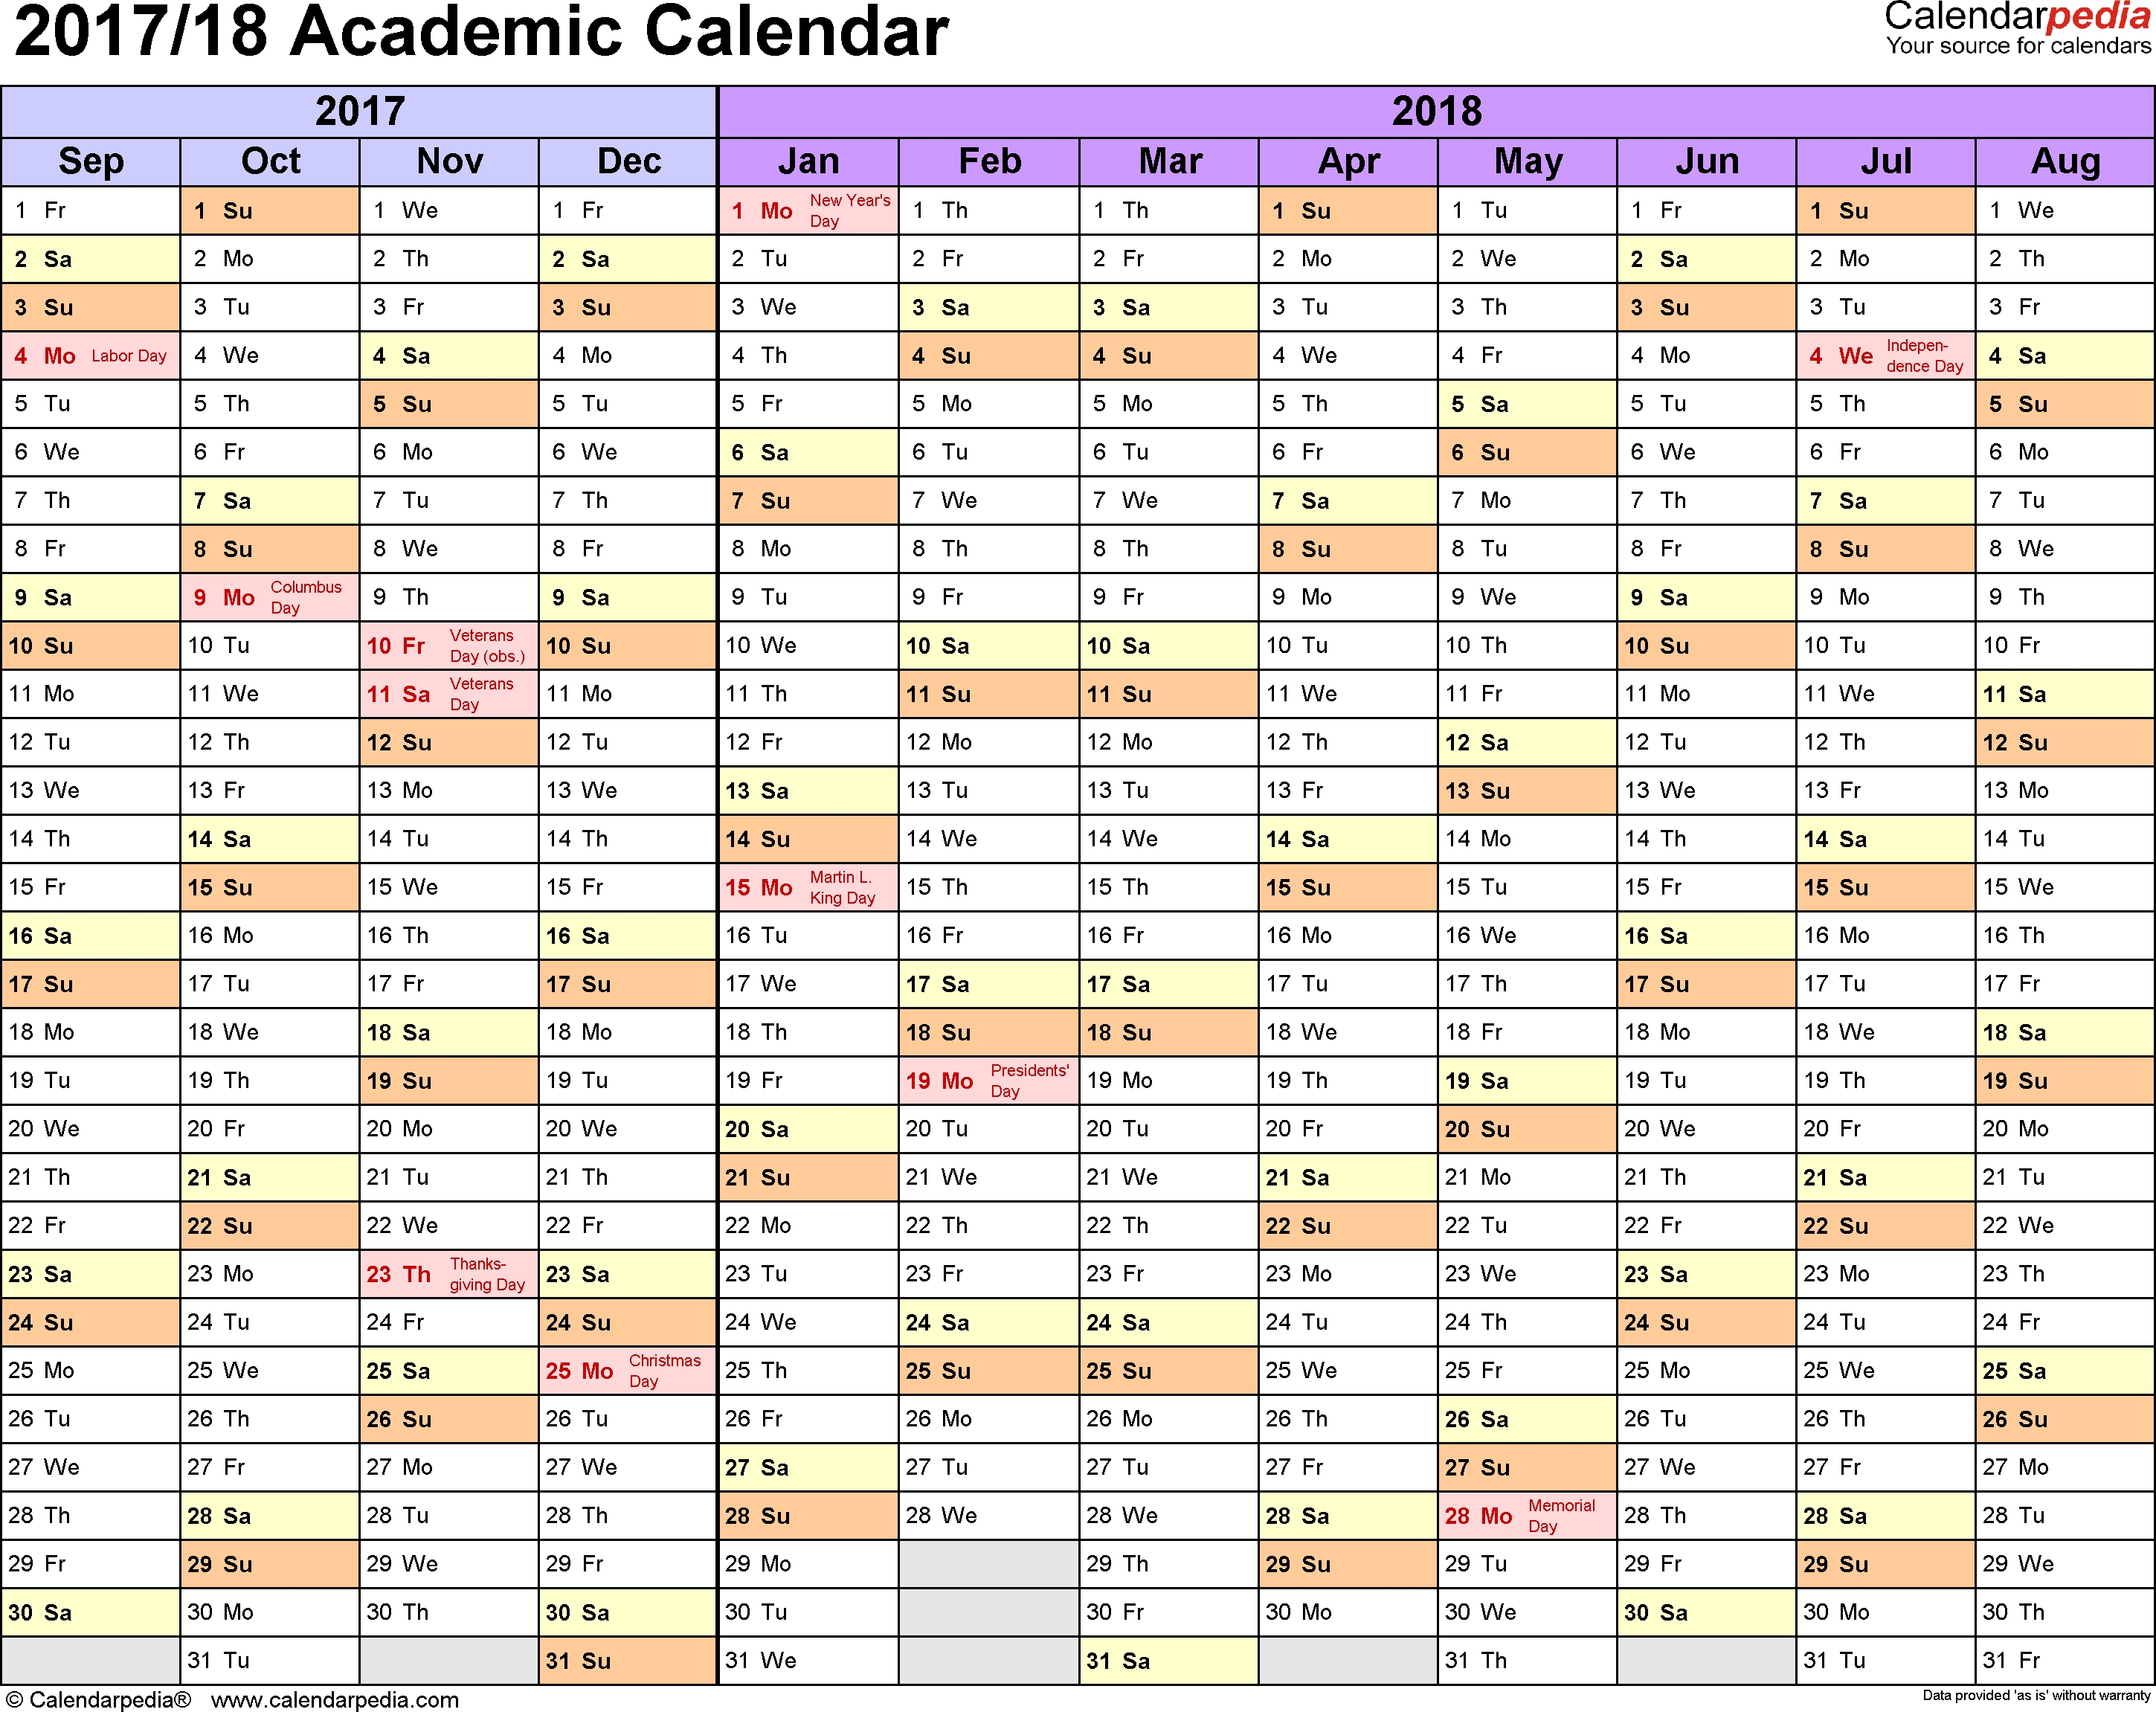 Academic Calendars 2017/2018 - Free Printable Pdf Templates